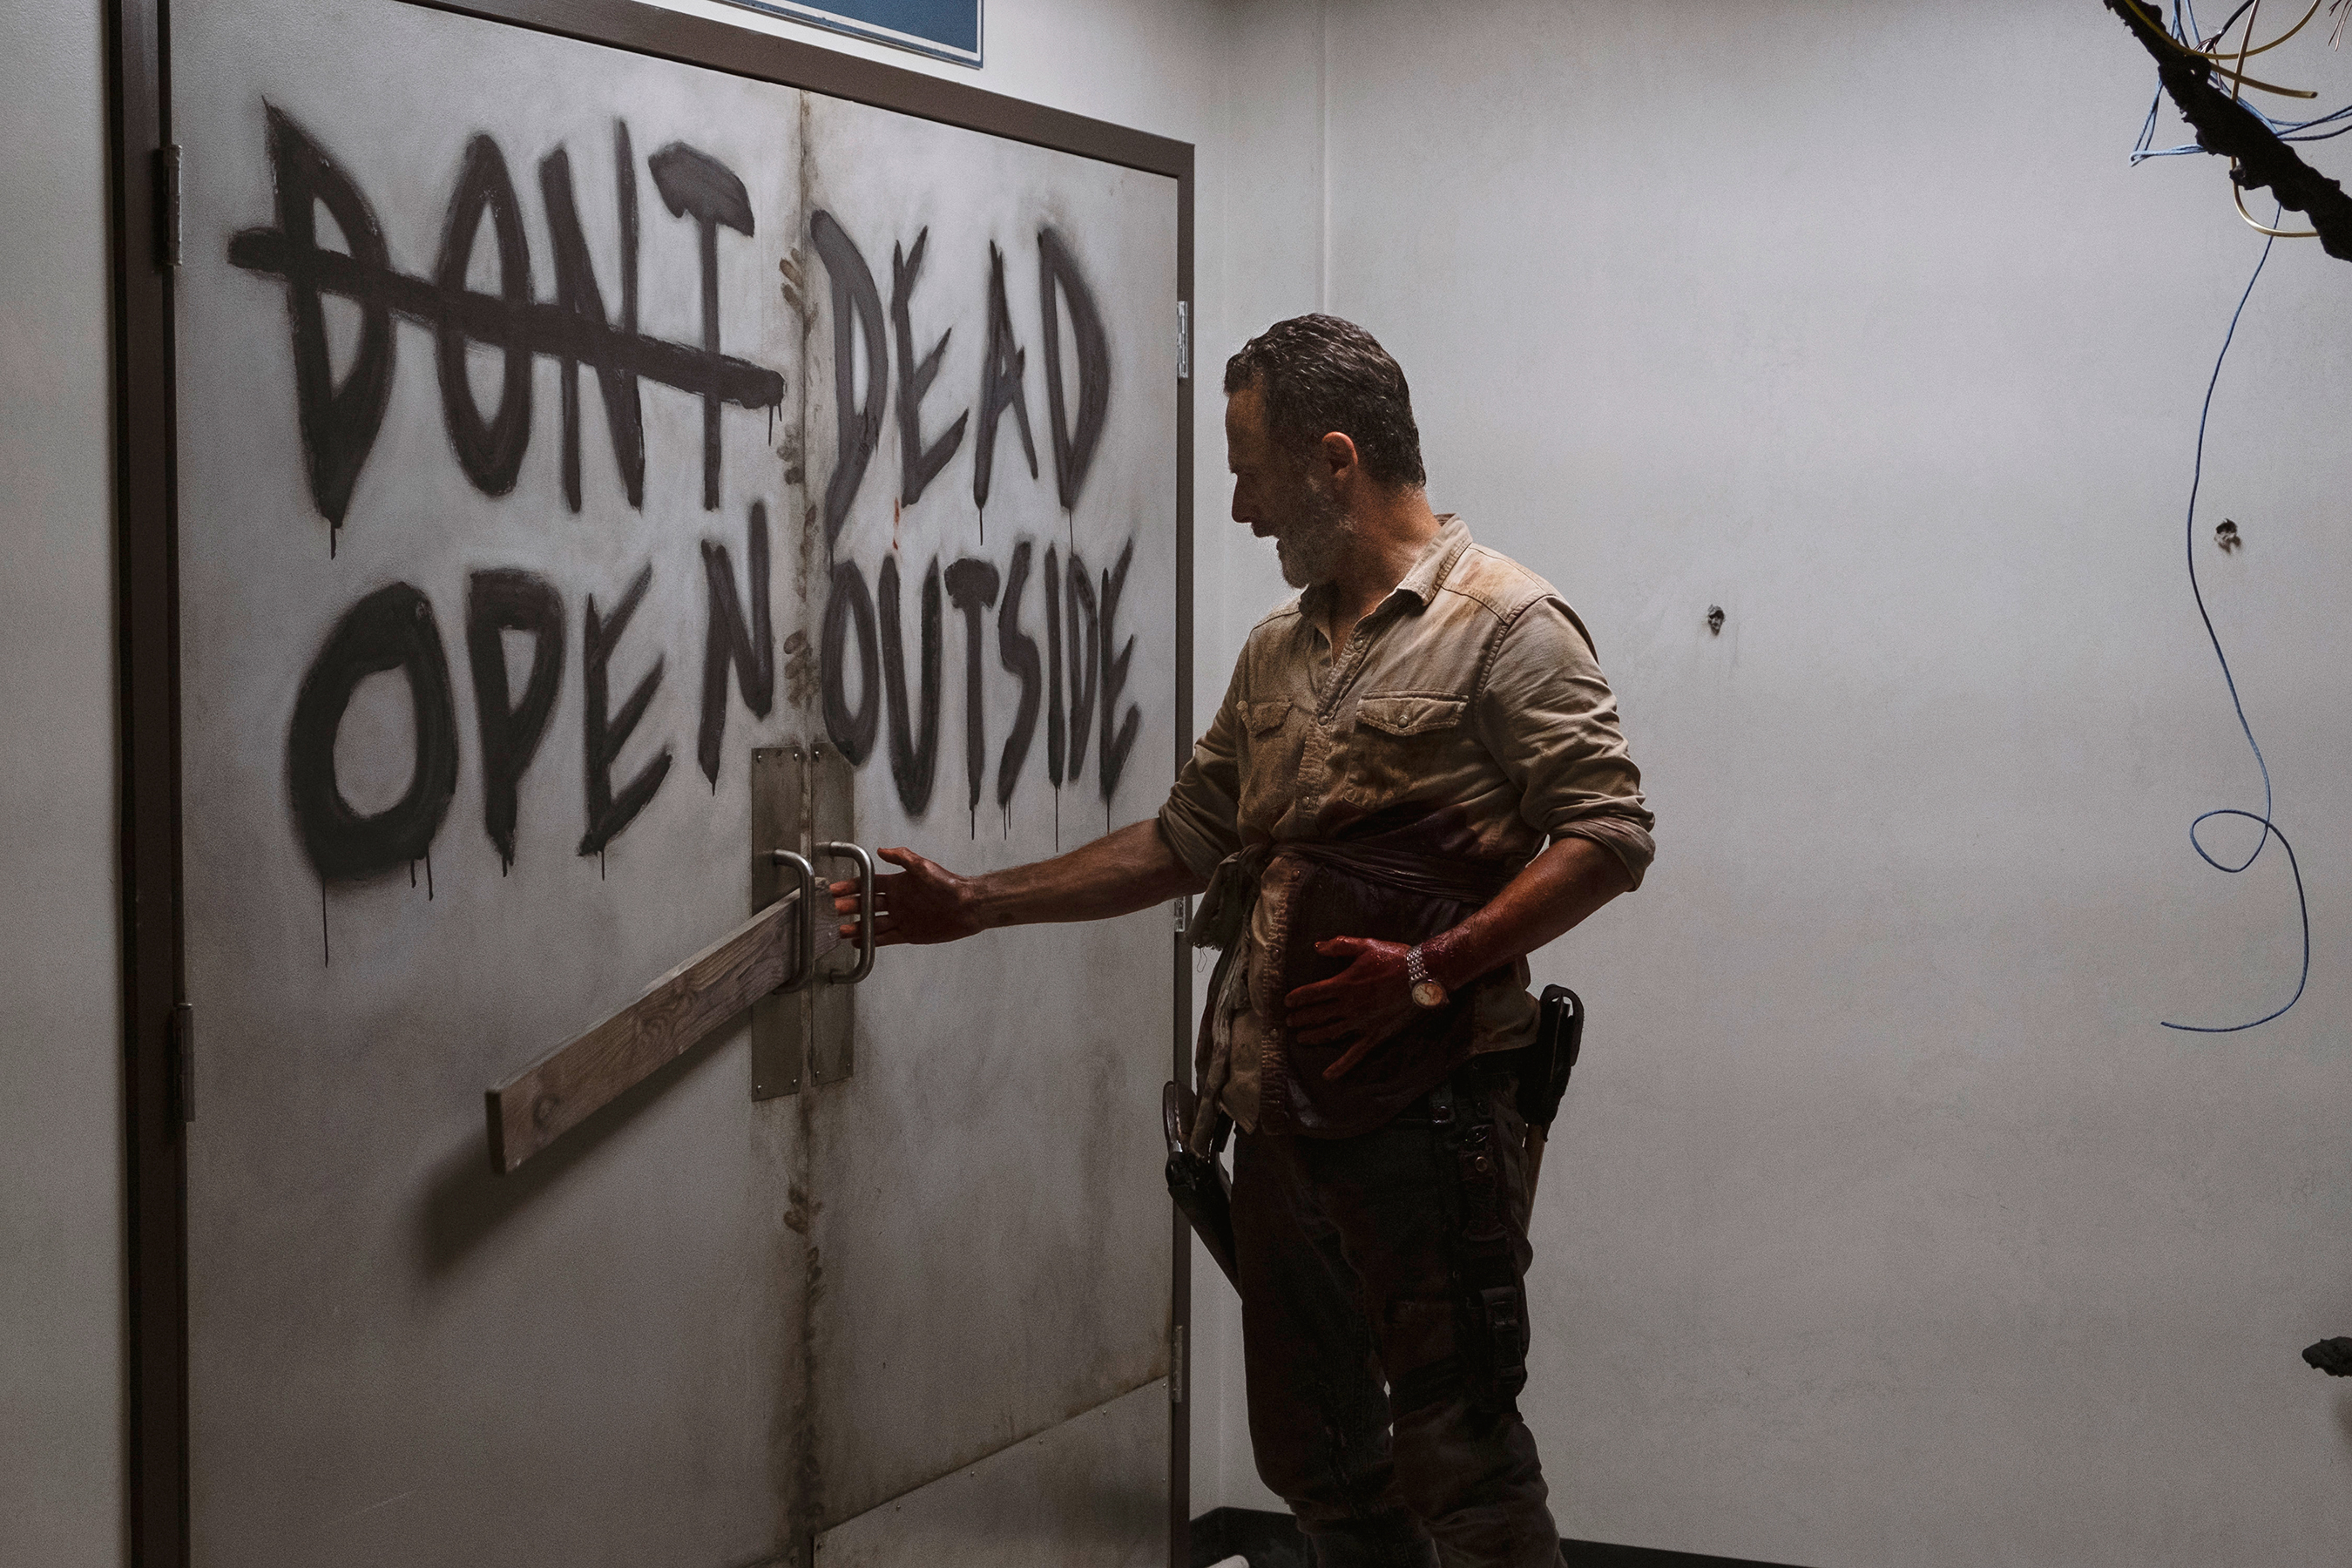 Rick Grimes The Walking Dead movie coming to theaters